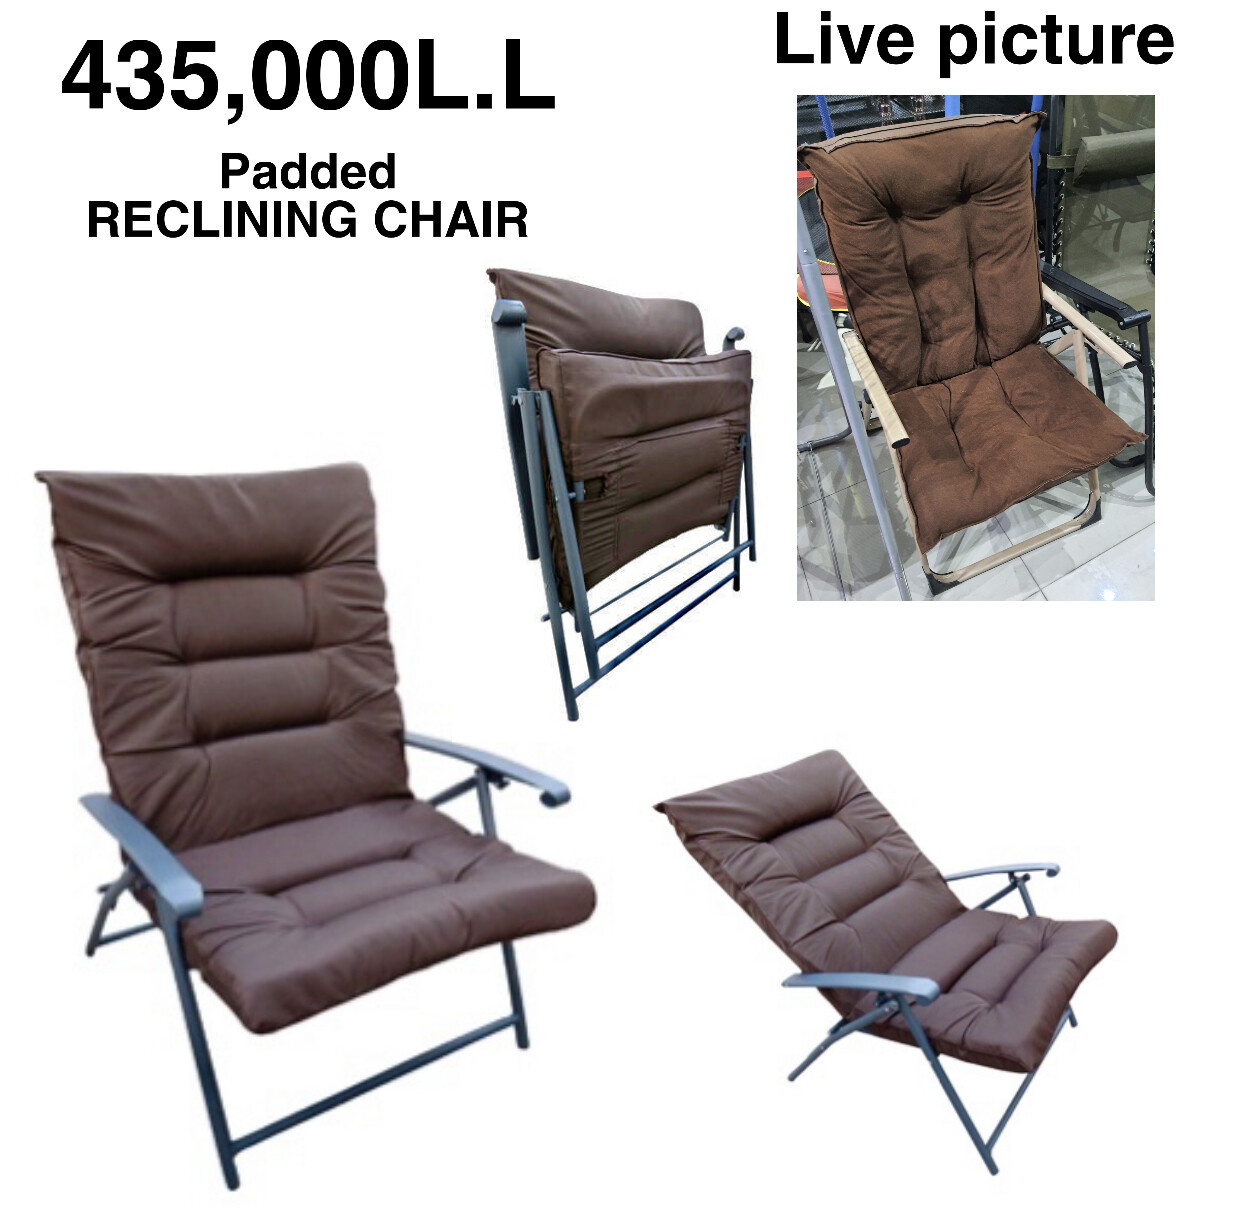 Padded Recliner Chair (BROWN)